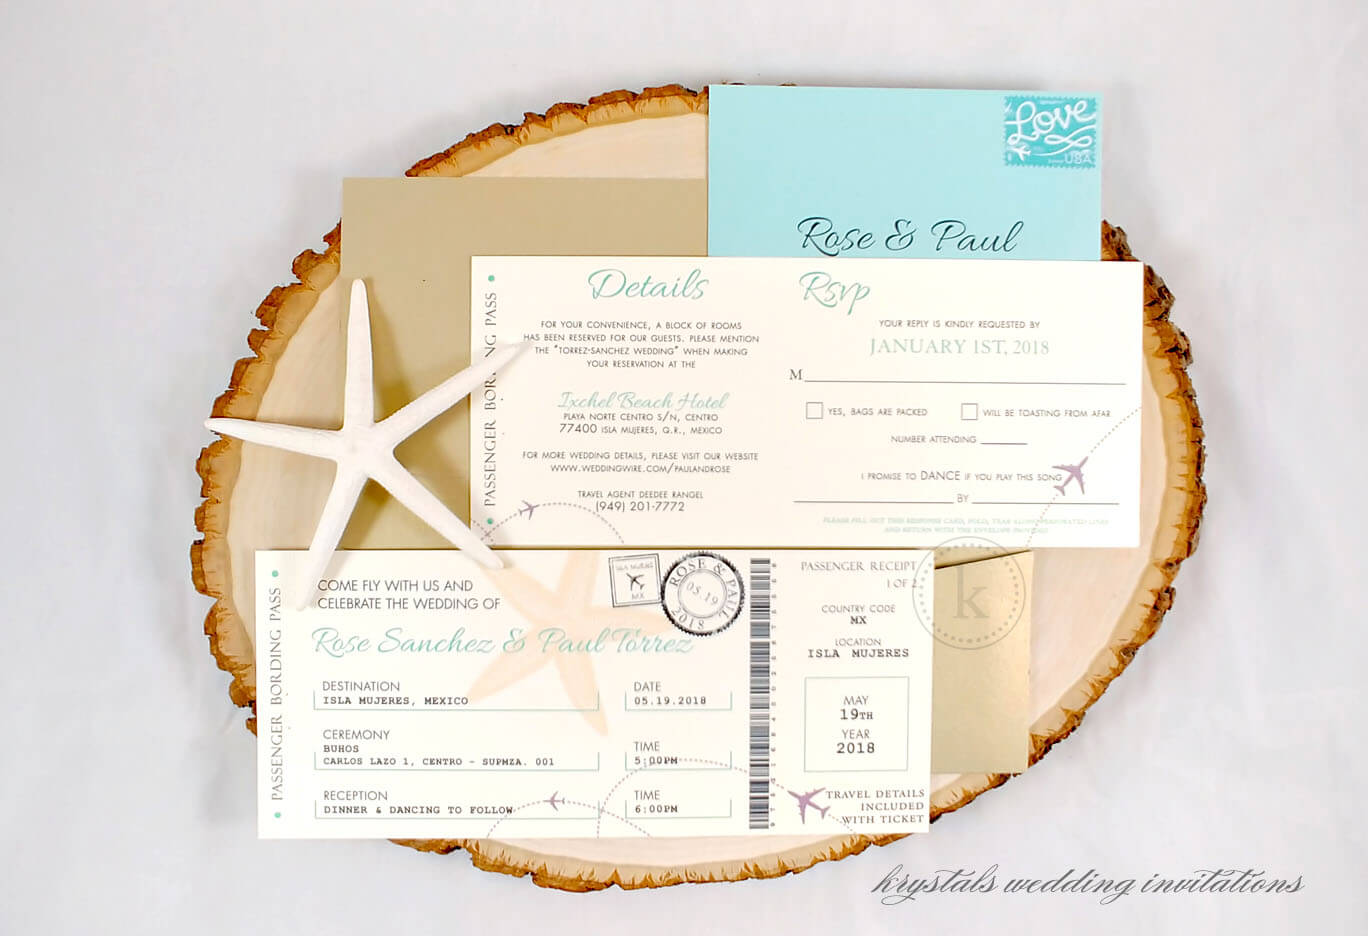 Plane Ticket Wedding Invitations - Krystals Wedding Invitations